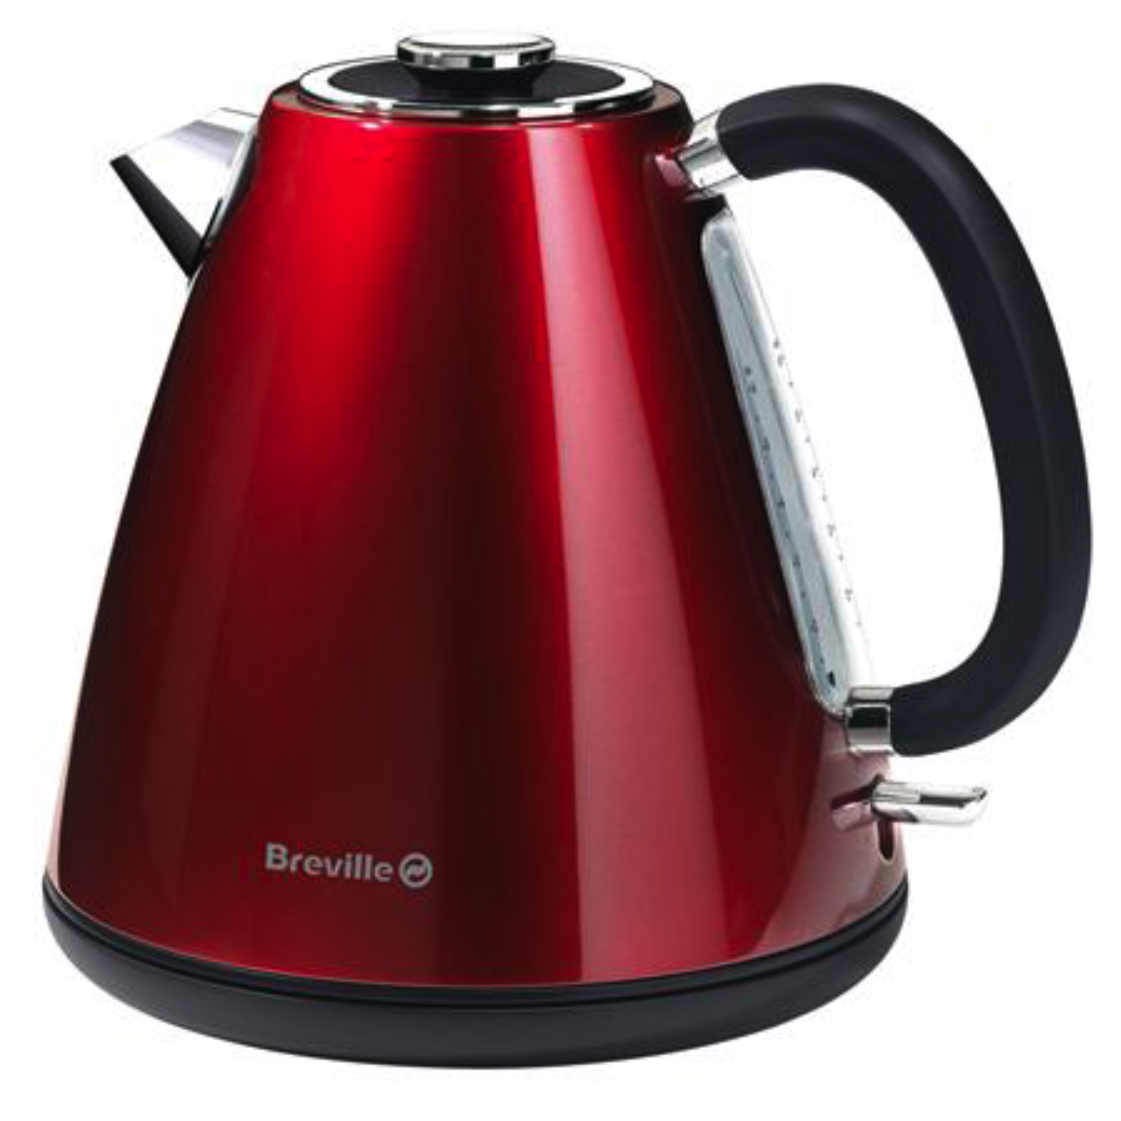 Breville Red S/Steel Jug Kettle - Red No Colour